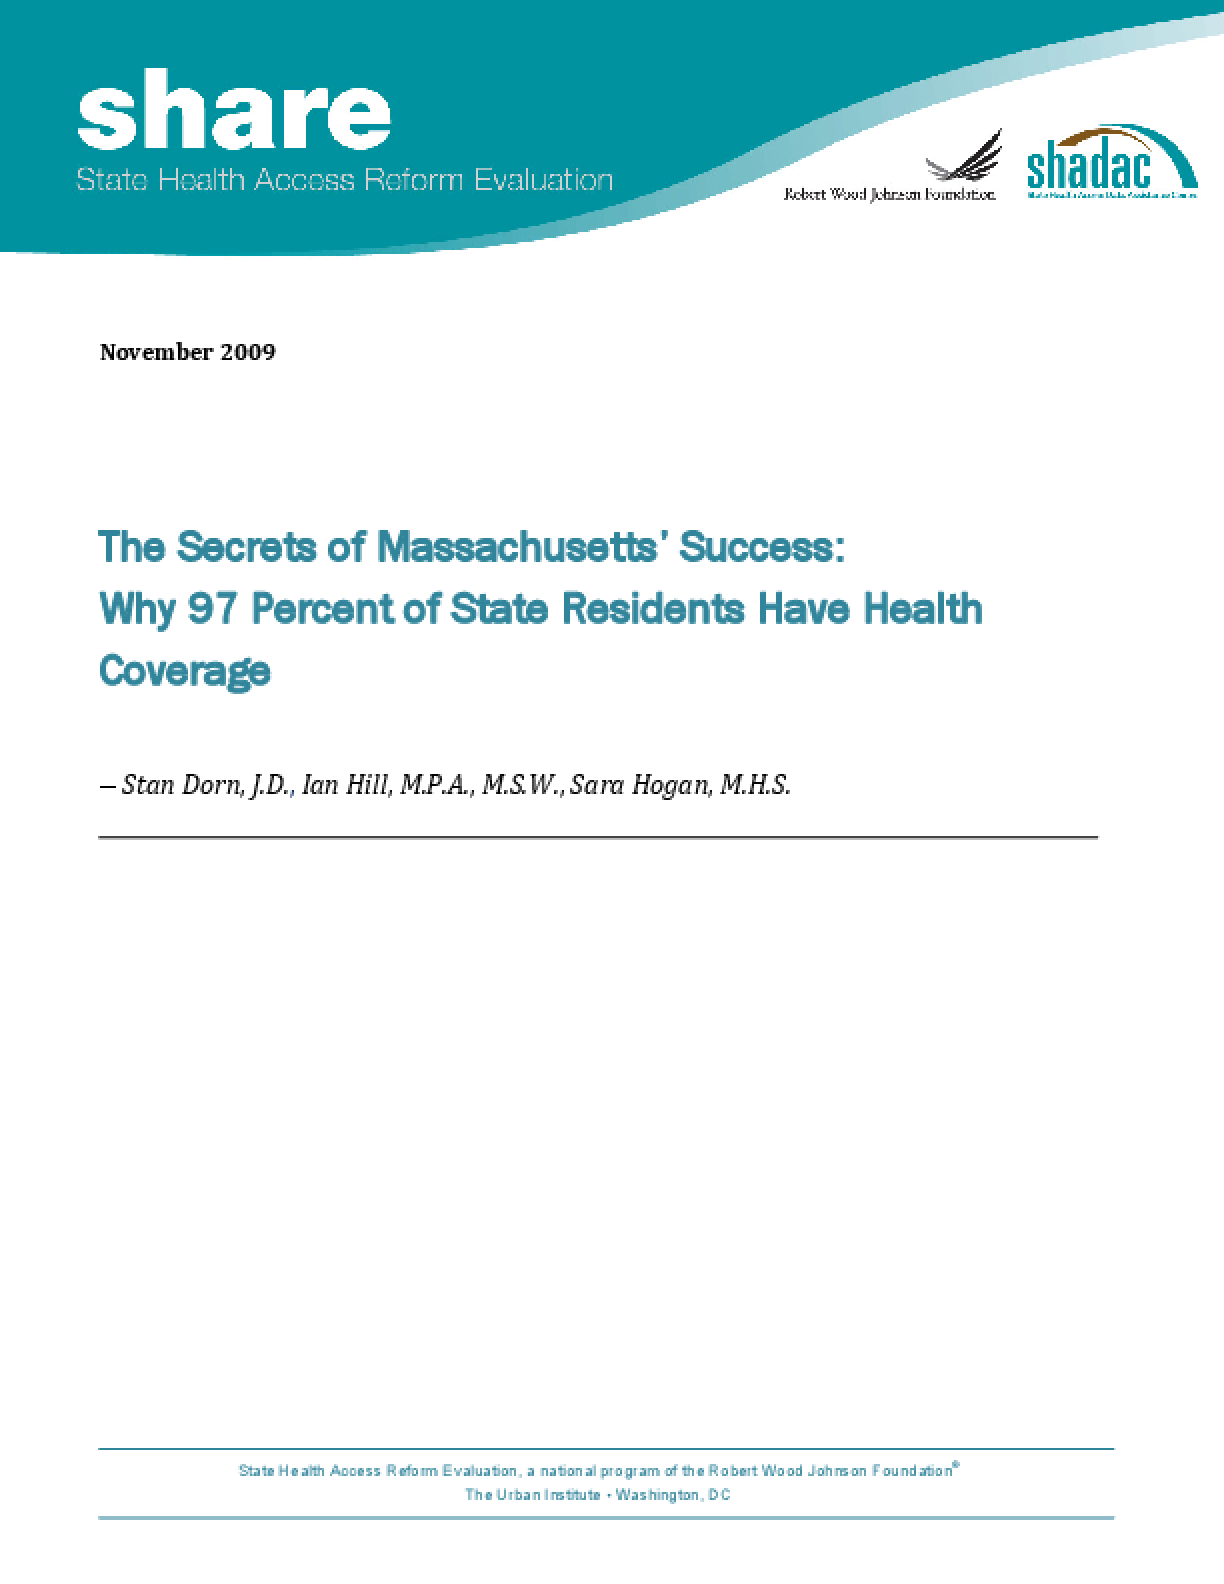 The Secrets of Massachusetts' Success: Why 97 Percent of State Residents Have Health Coverage